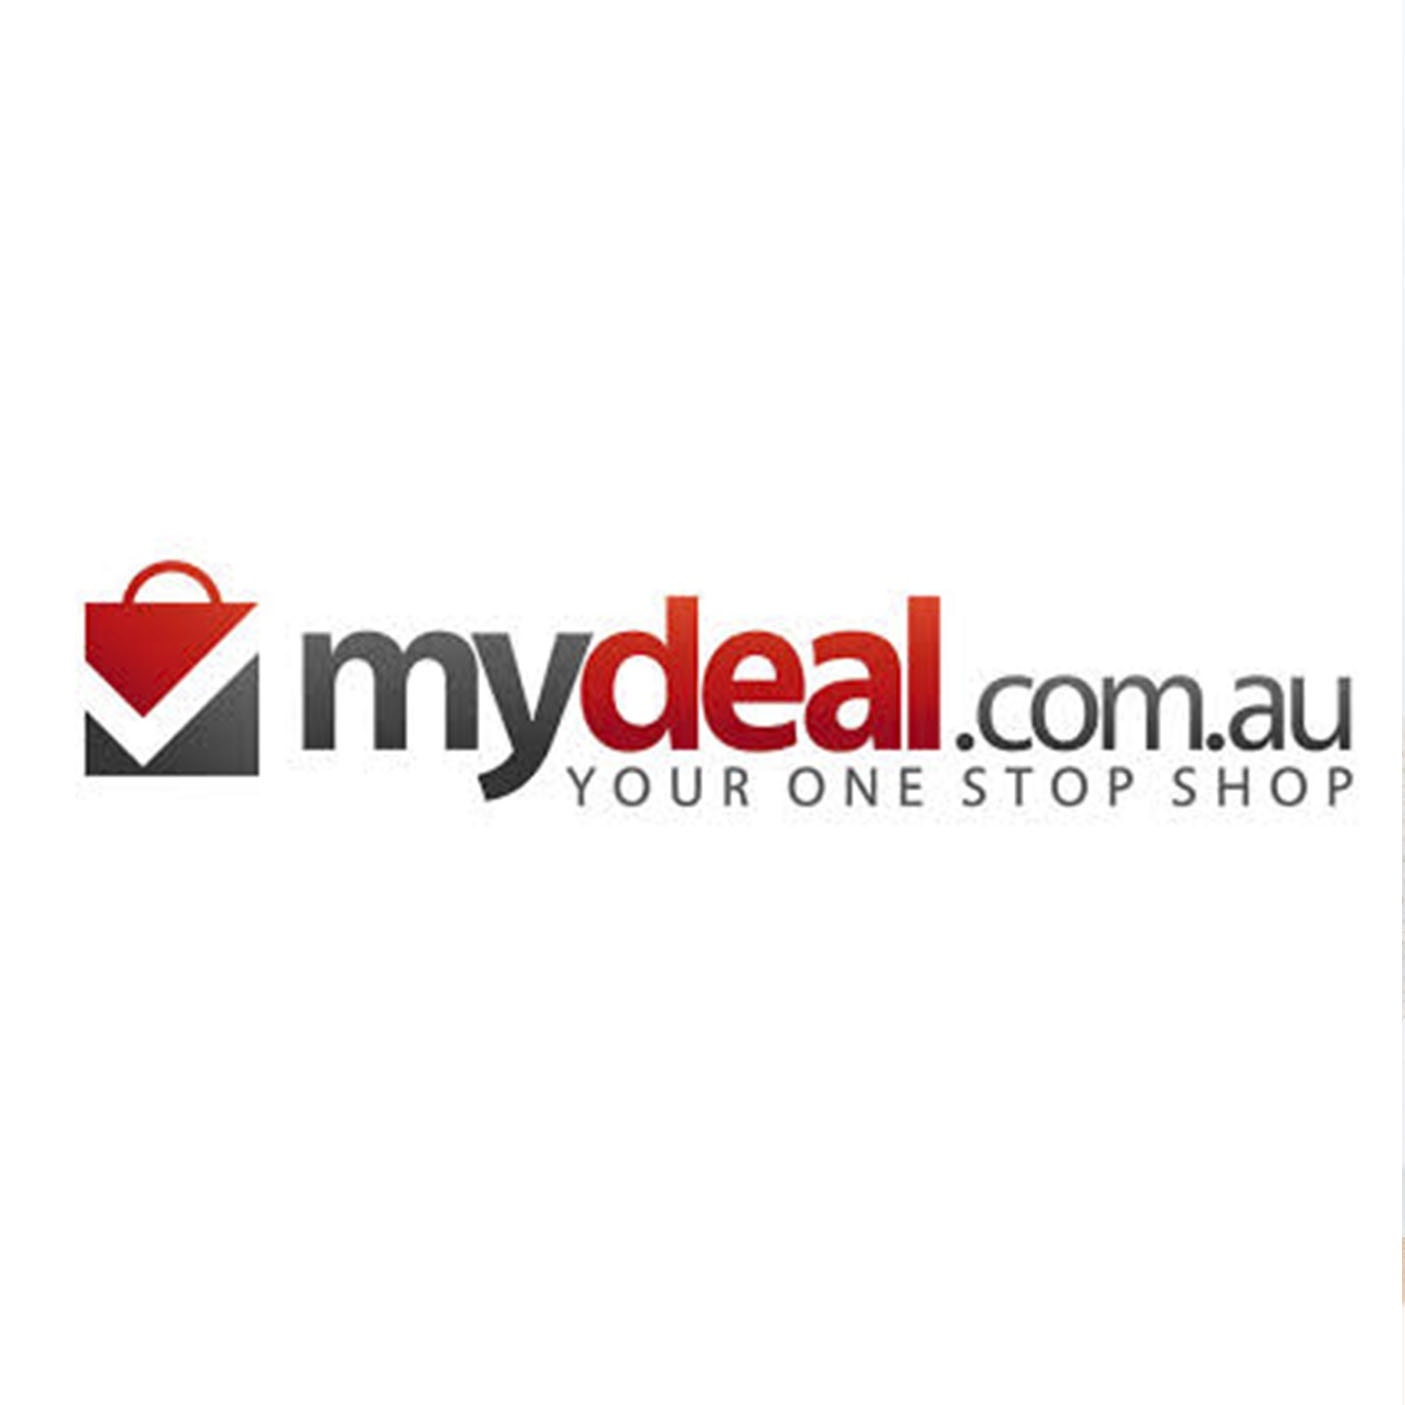 mydeal.com.au shares expert advice to increase your property value - mydeal.com.au asks renovator store